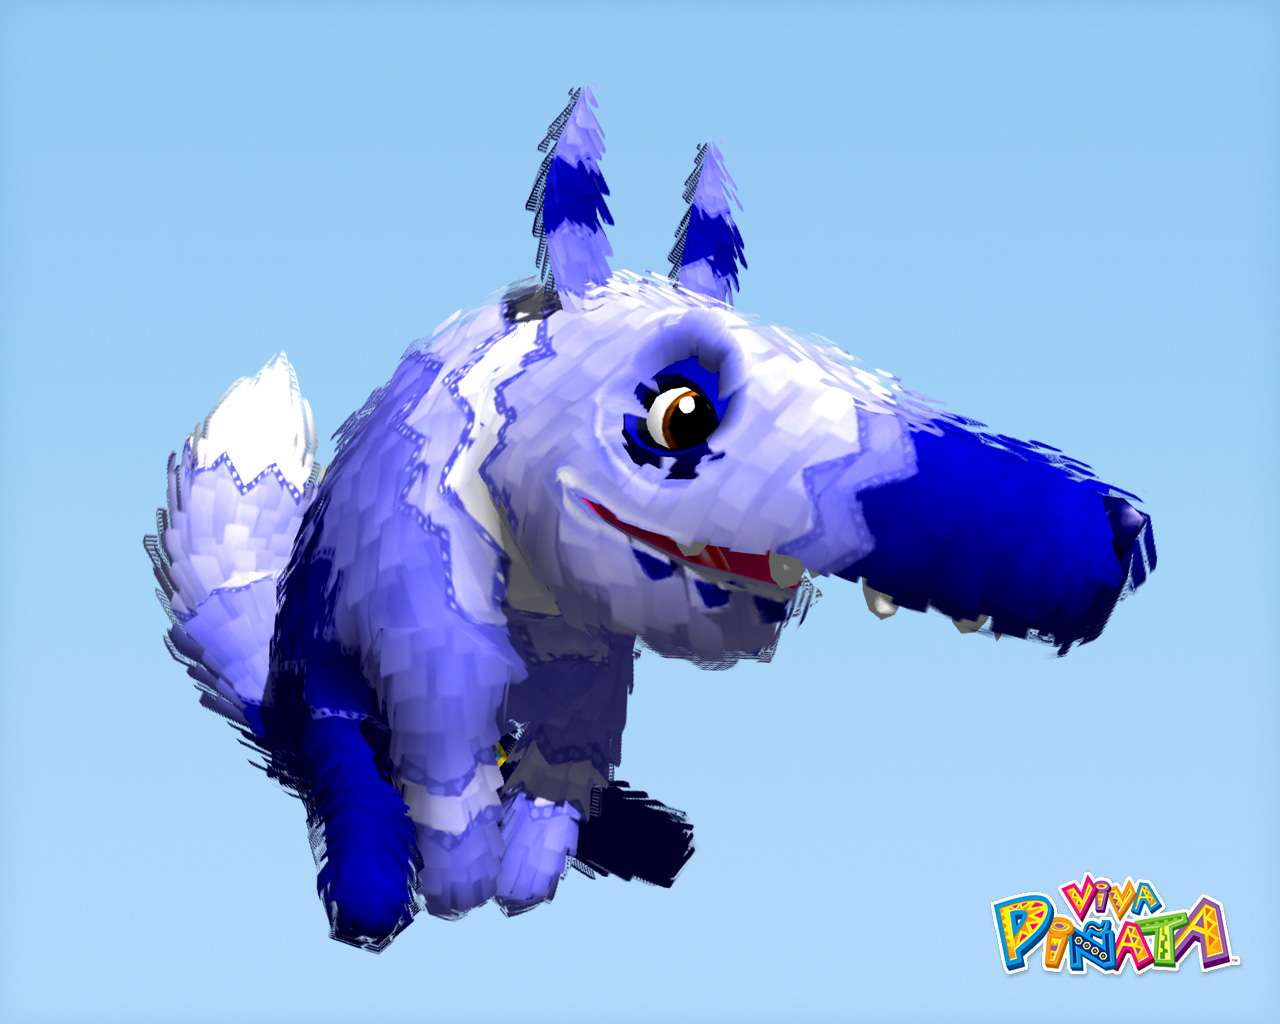 How to Evolve a Newtgat Into a Salamango on Viva Piñata How to Evolve a Newtgat Into a Salamango on Viva Piñata new picture